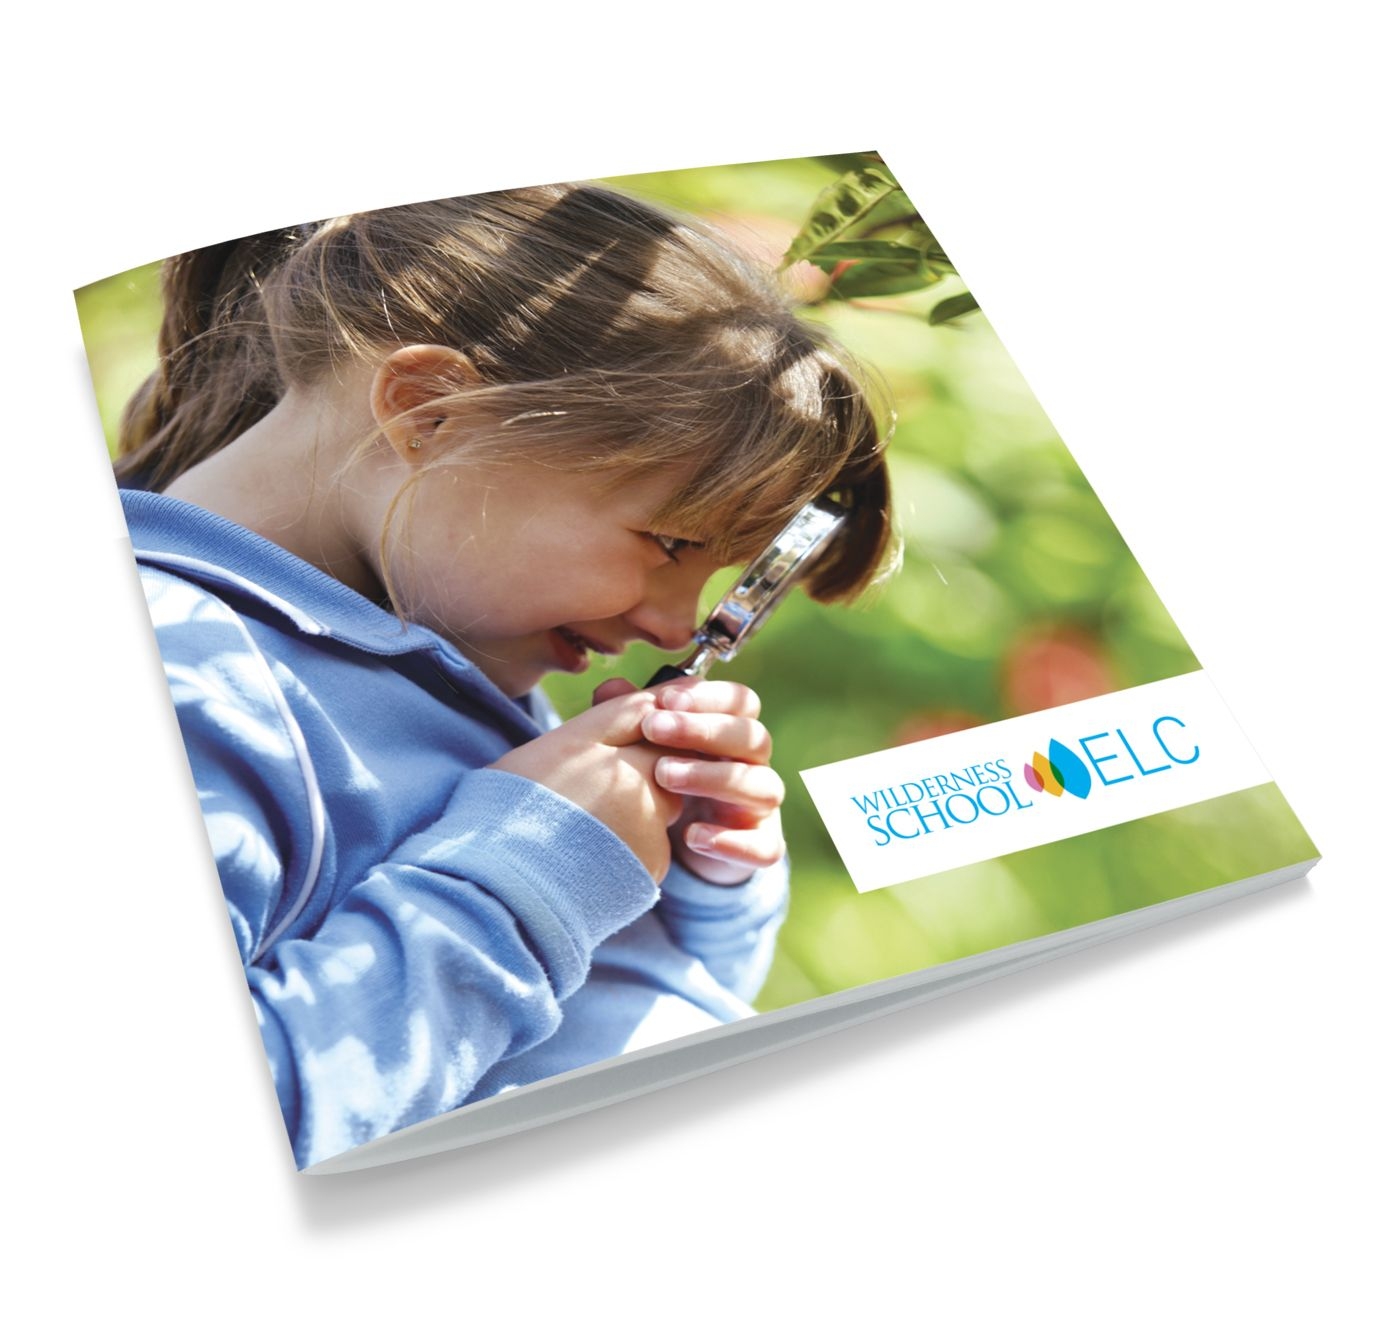 Wilderness School ELC brochure. | Work | Pinterest